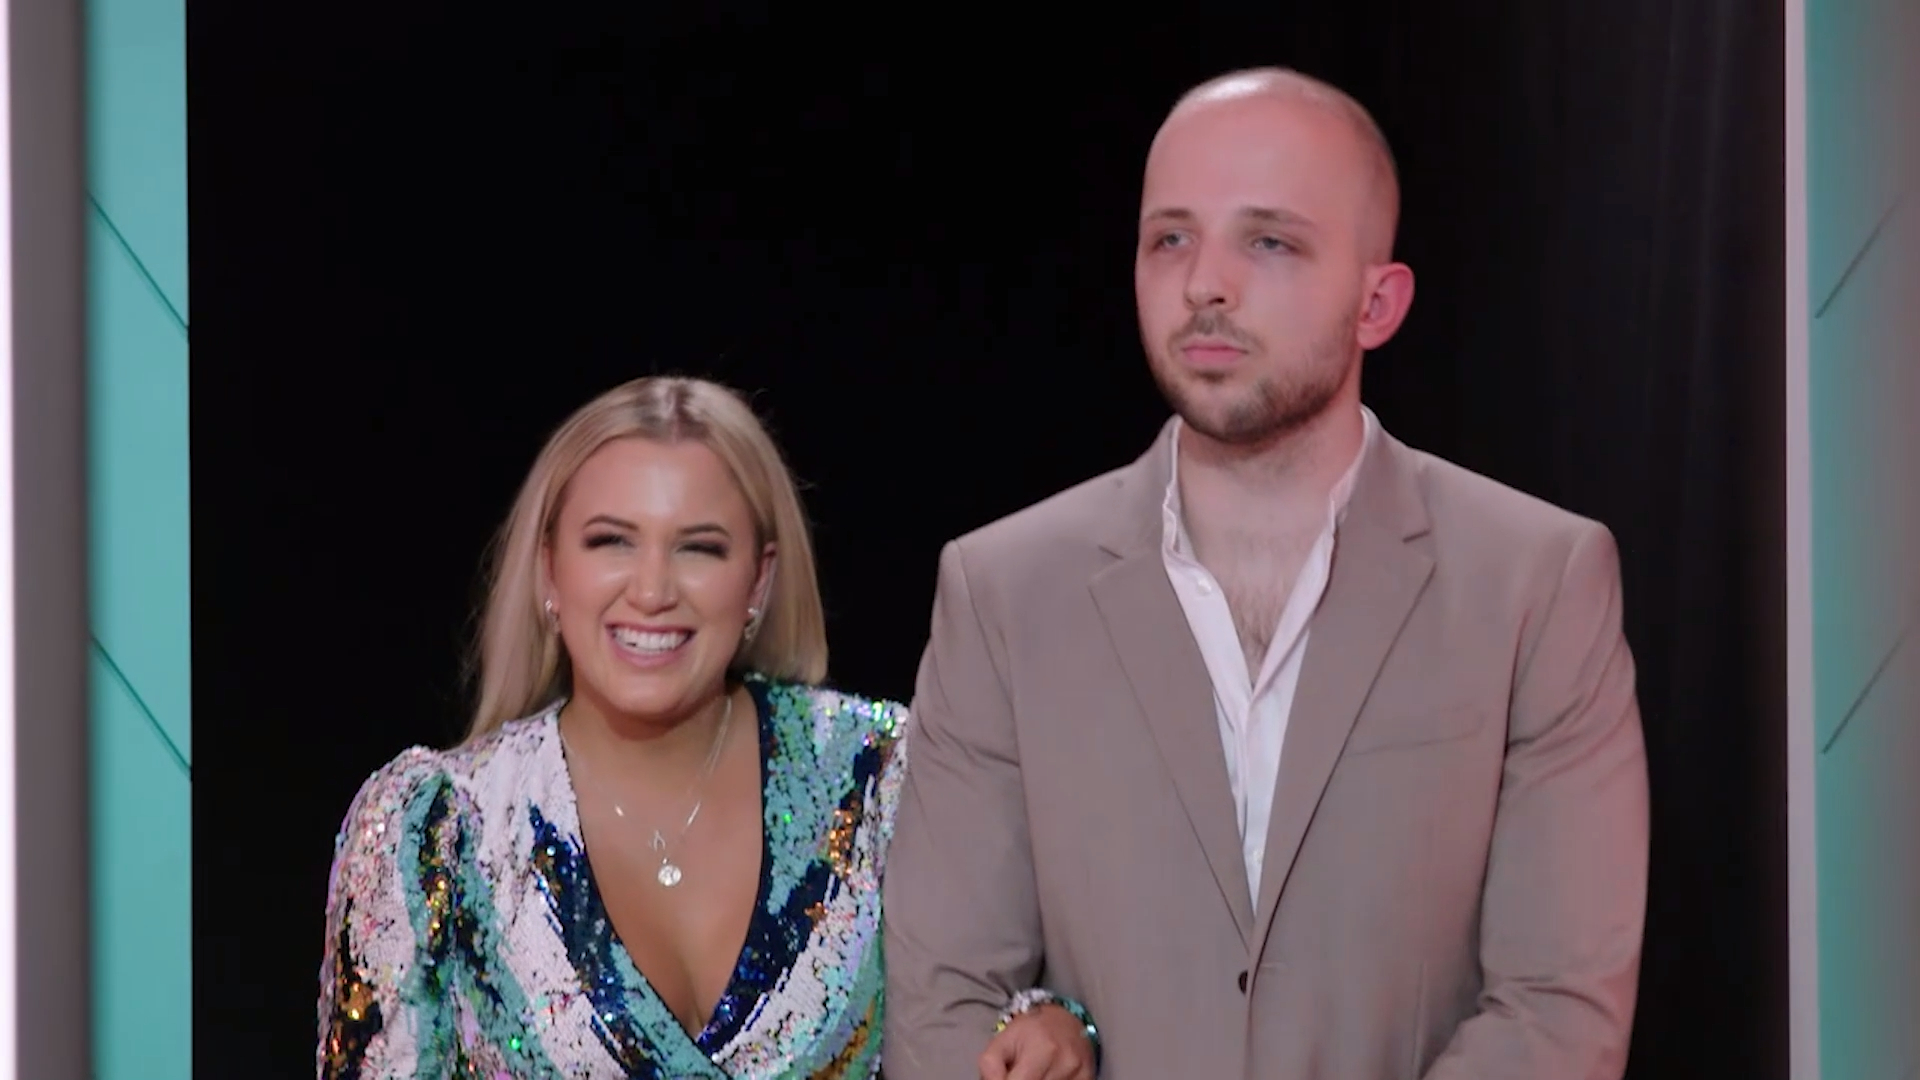 Alexander and Eliza explain why they should win Beauty and the Geek